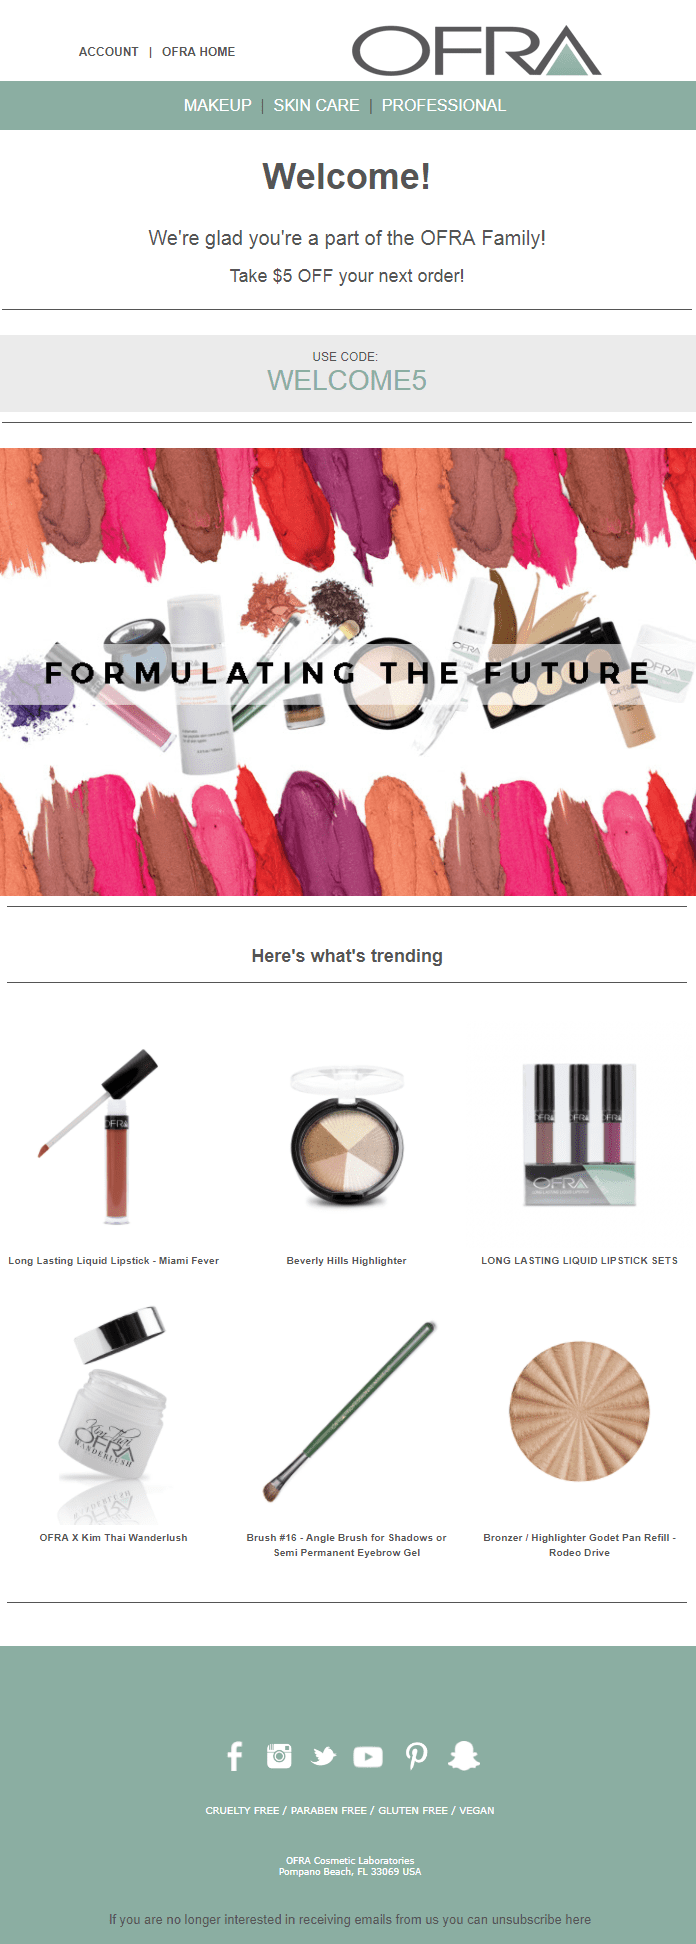 Ofra welcome email campaign make up offer code product recommendations